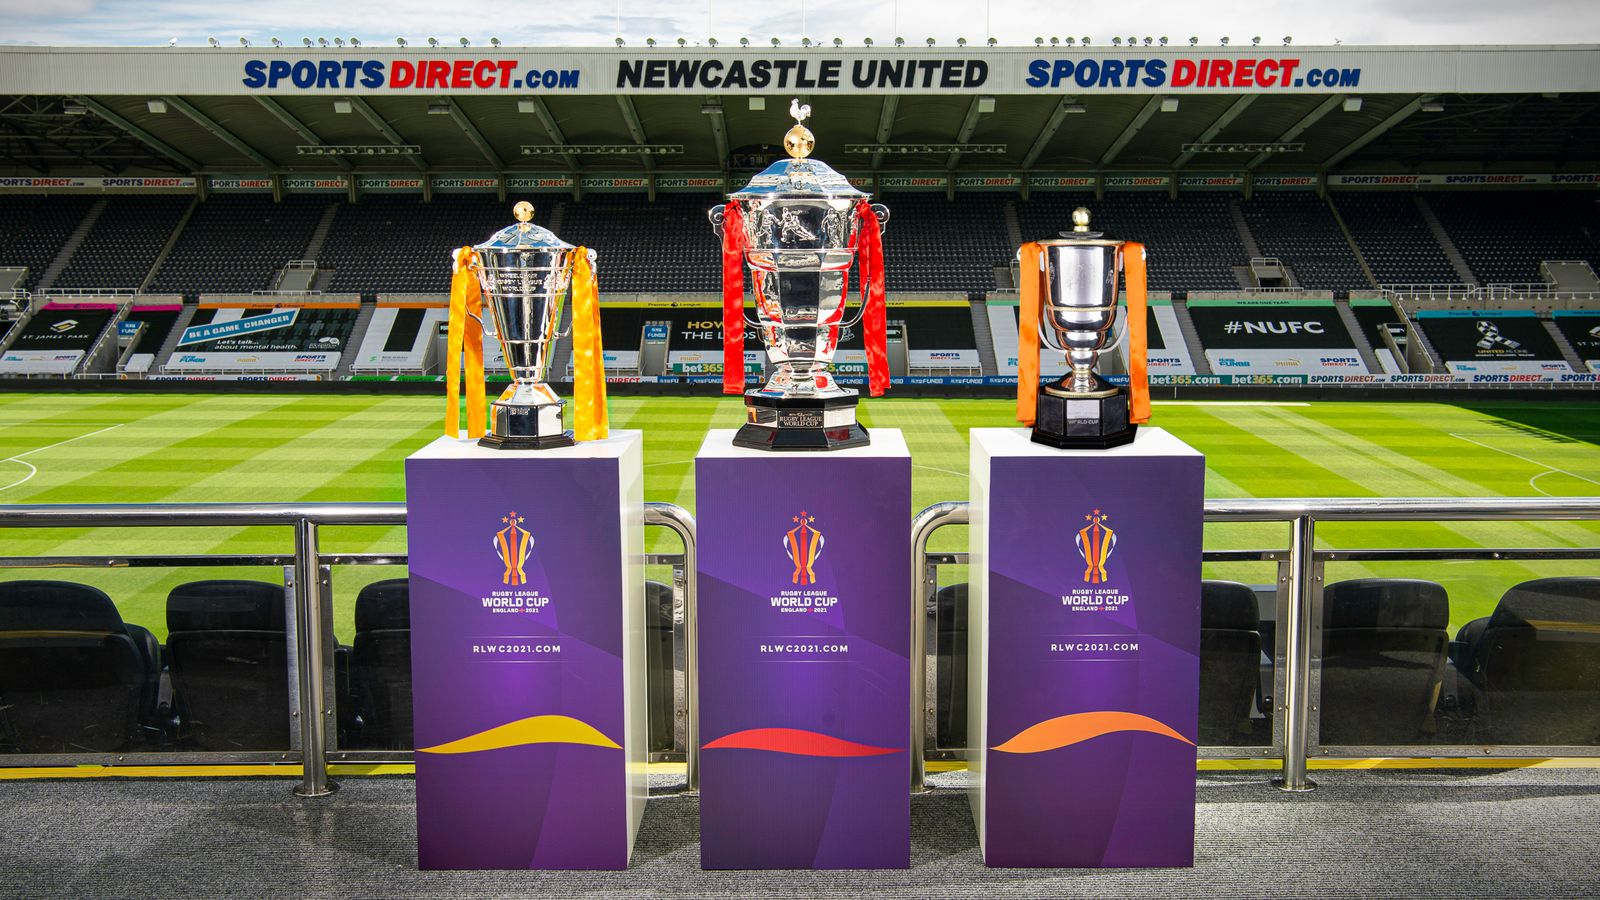 Rugby league world cup 2021 betting aiding and abetting california civil